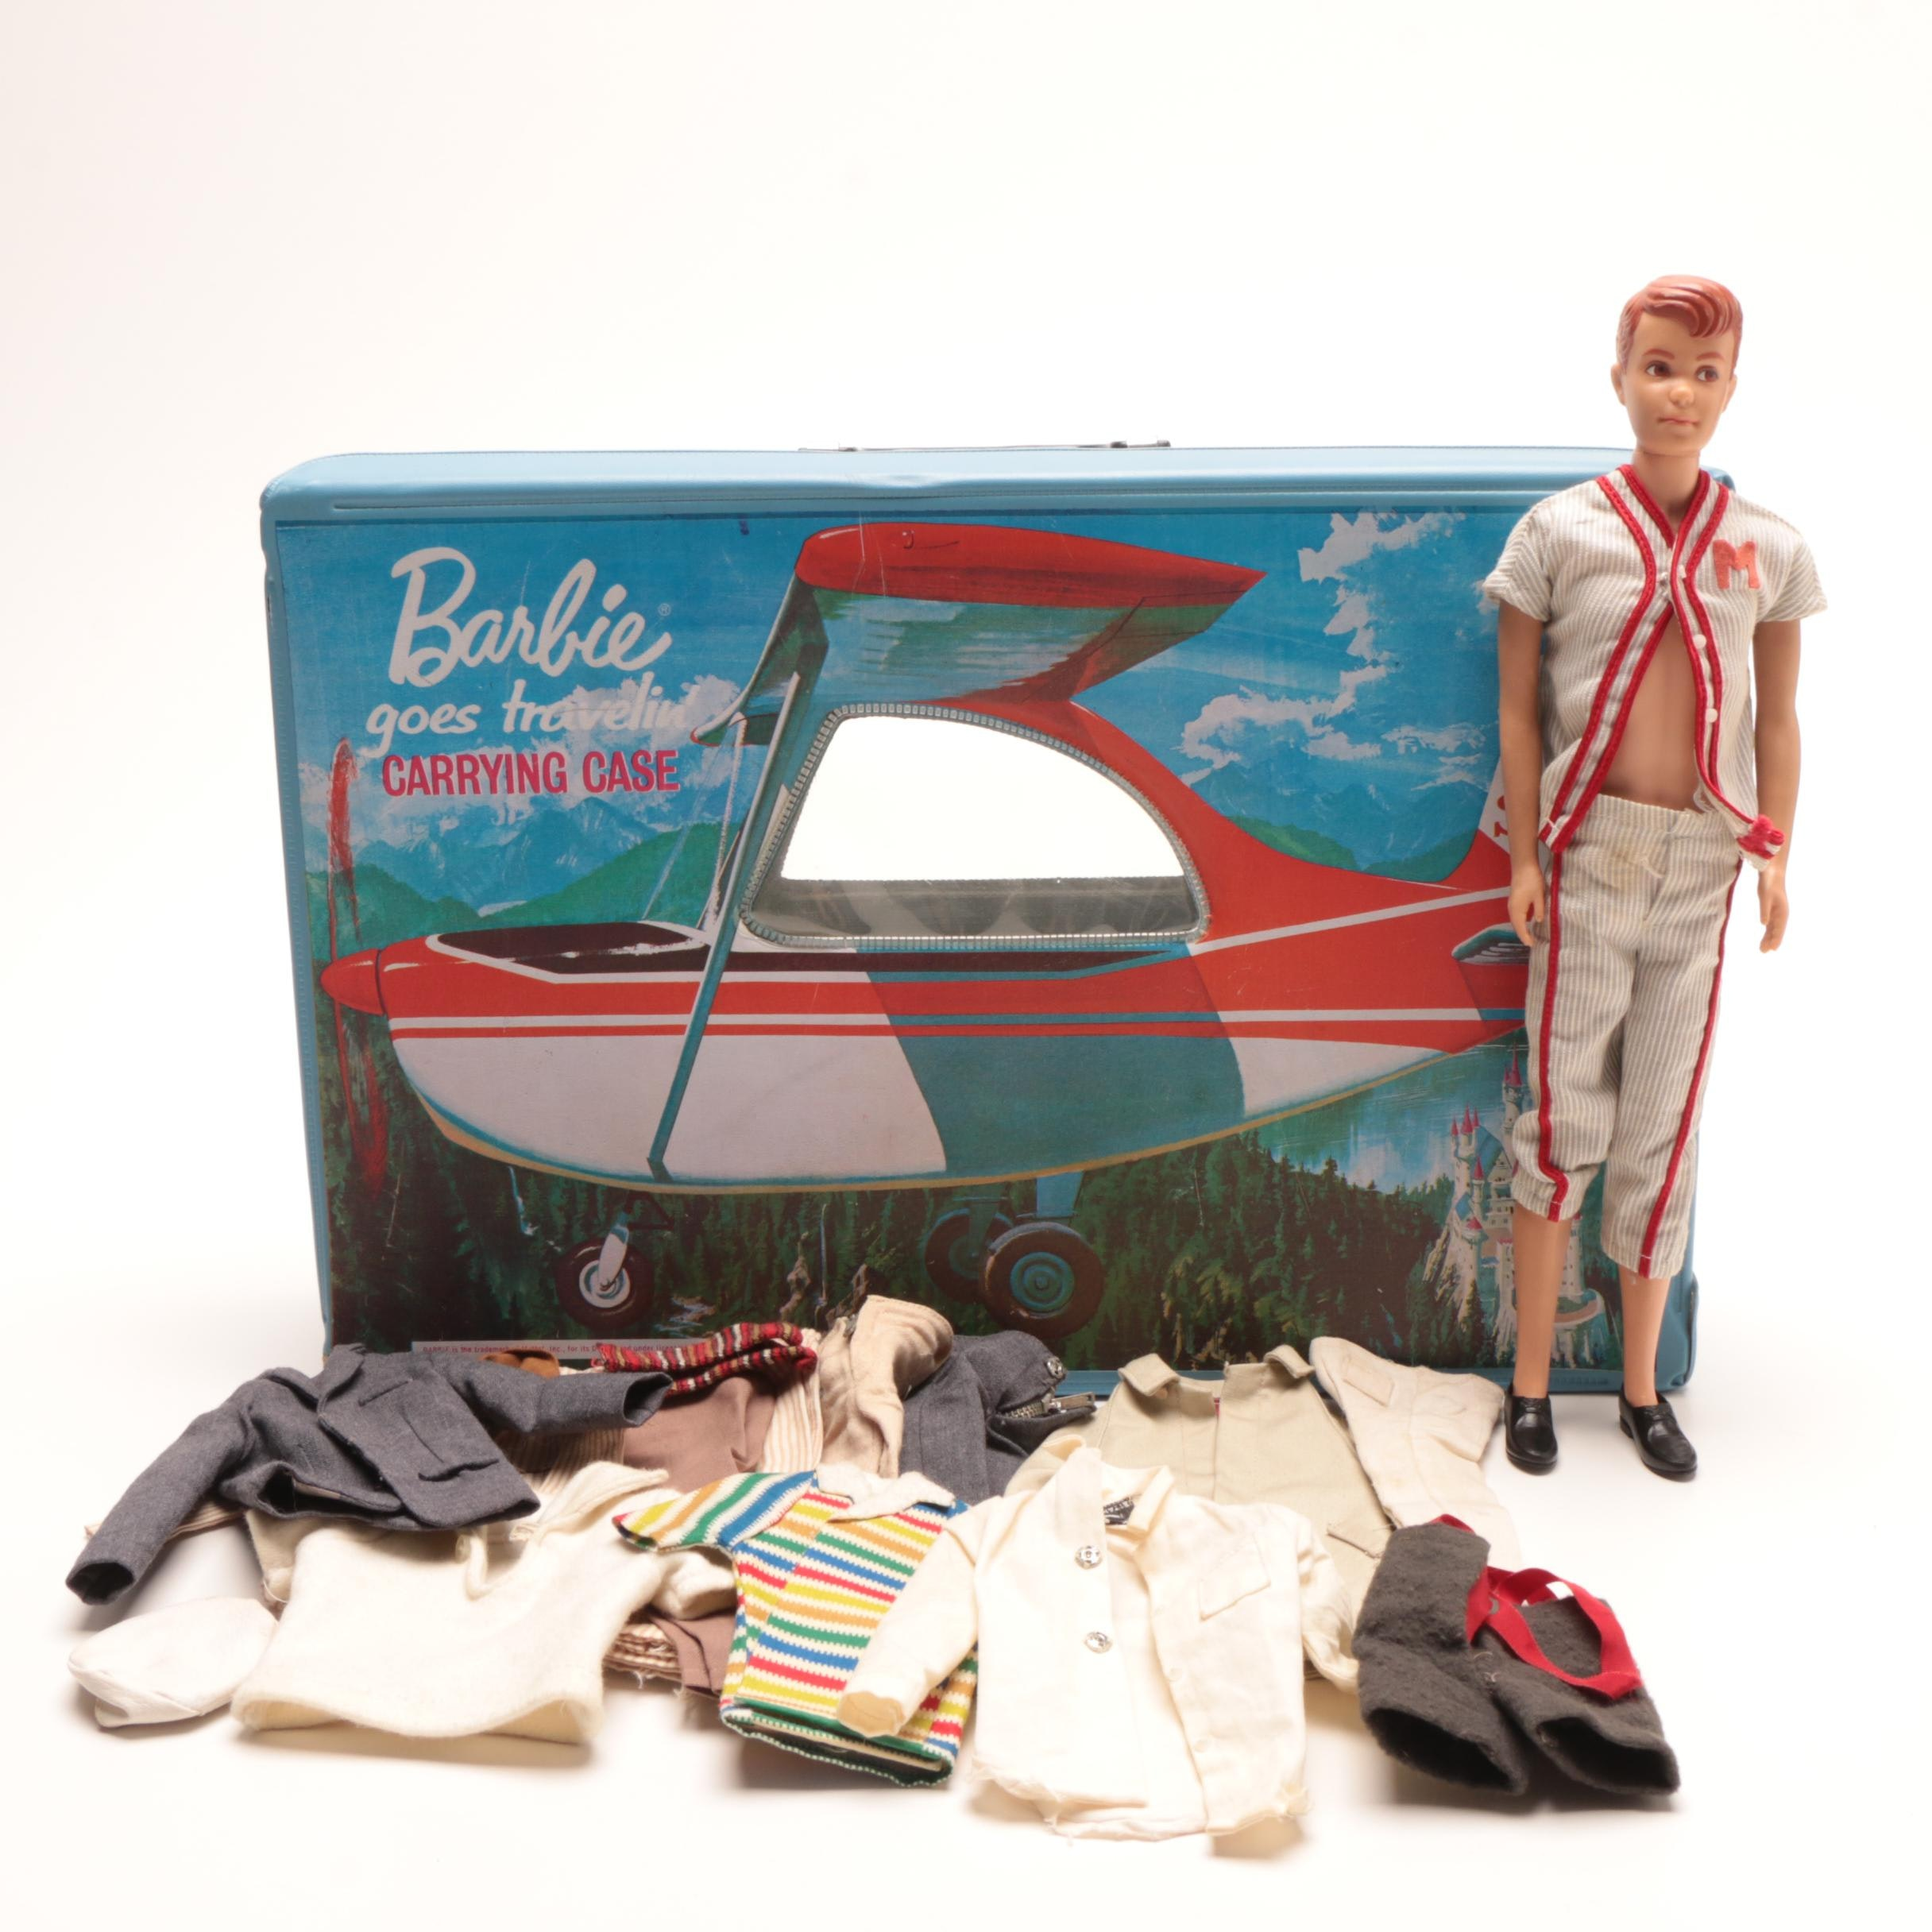 Barbie Goes Traveling Carrying Case with Allen Doll & Accessories